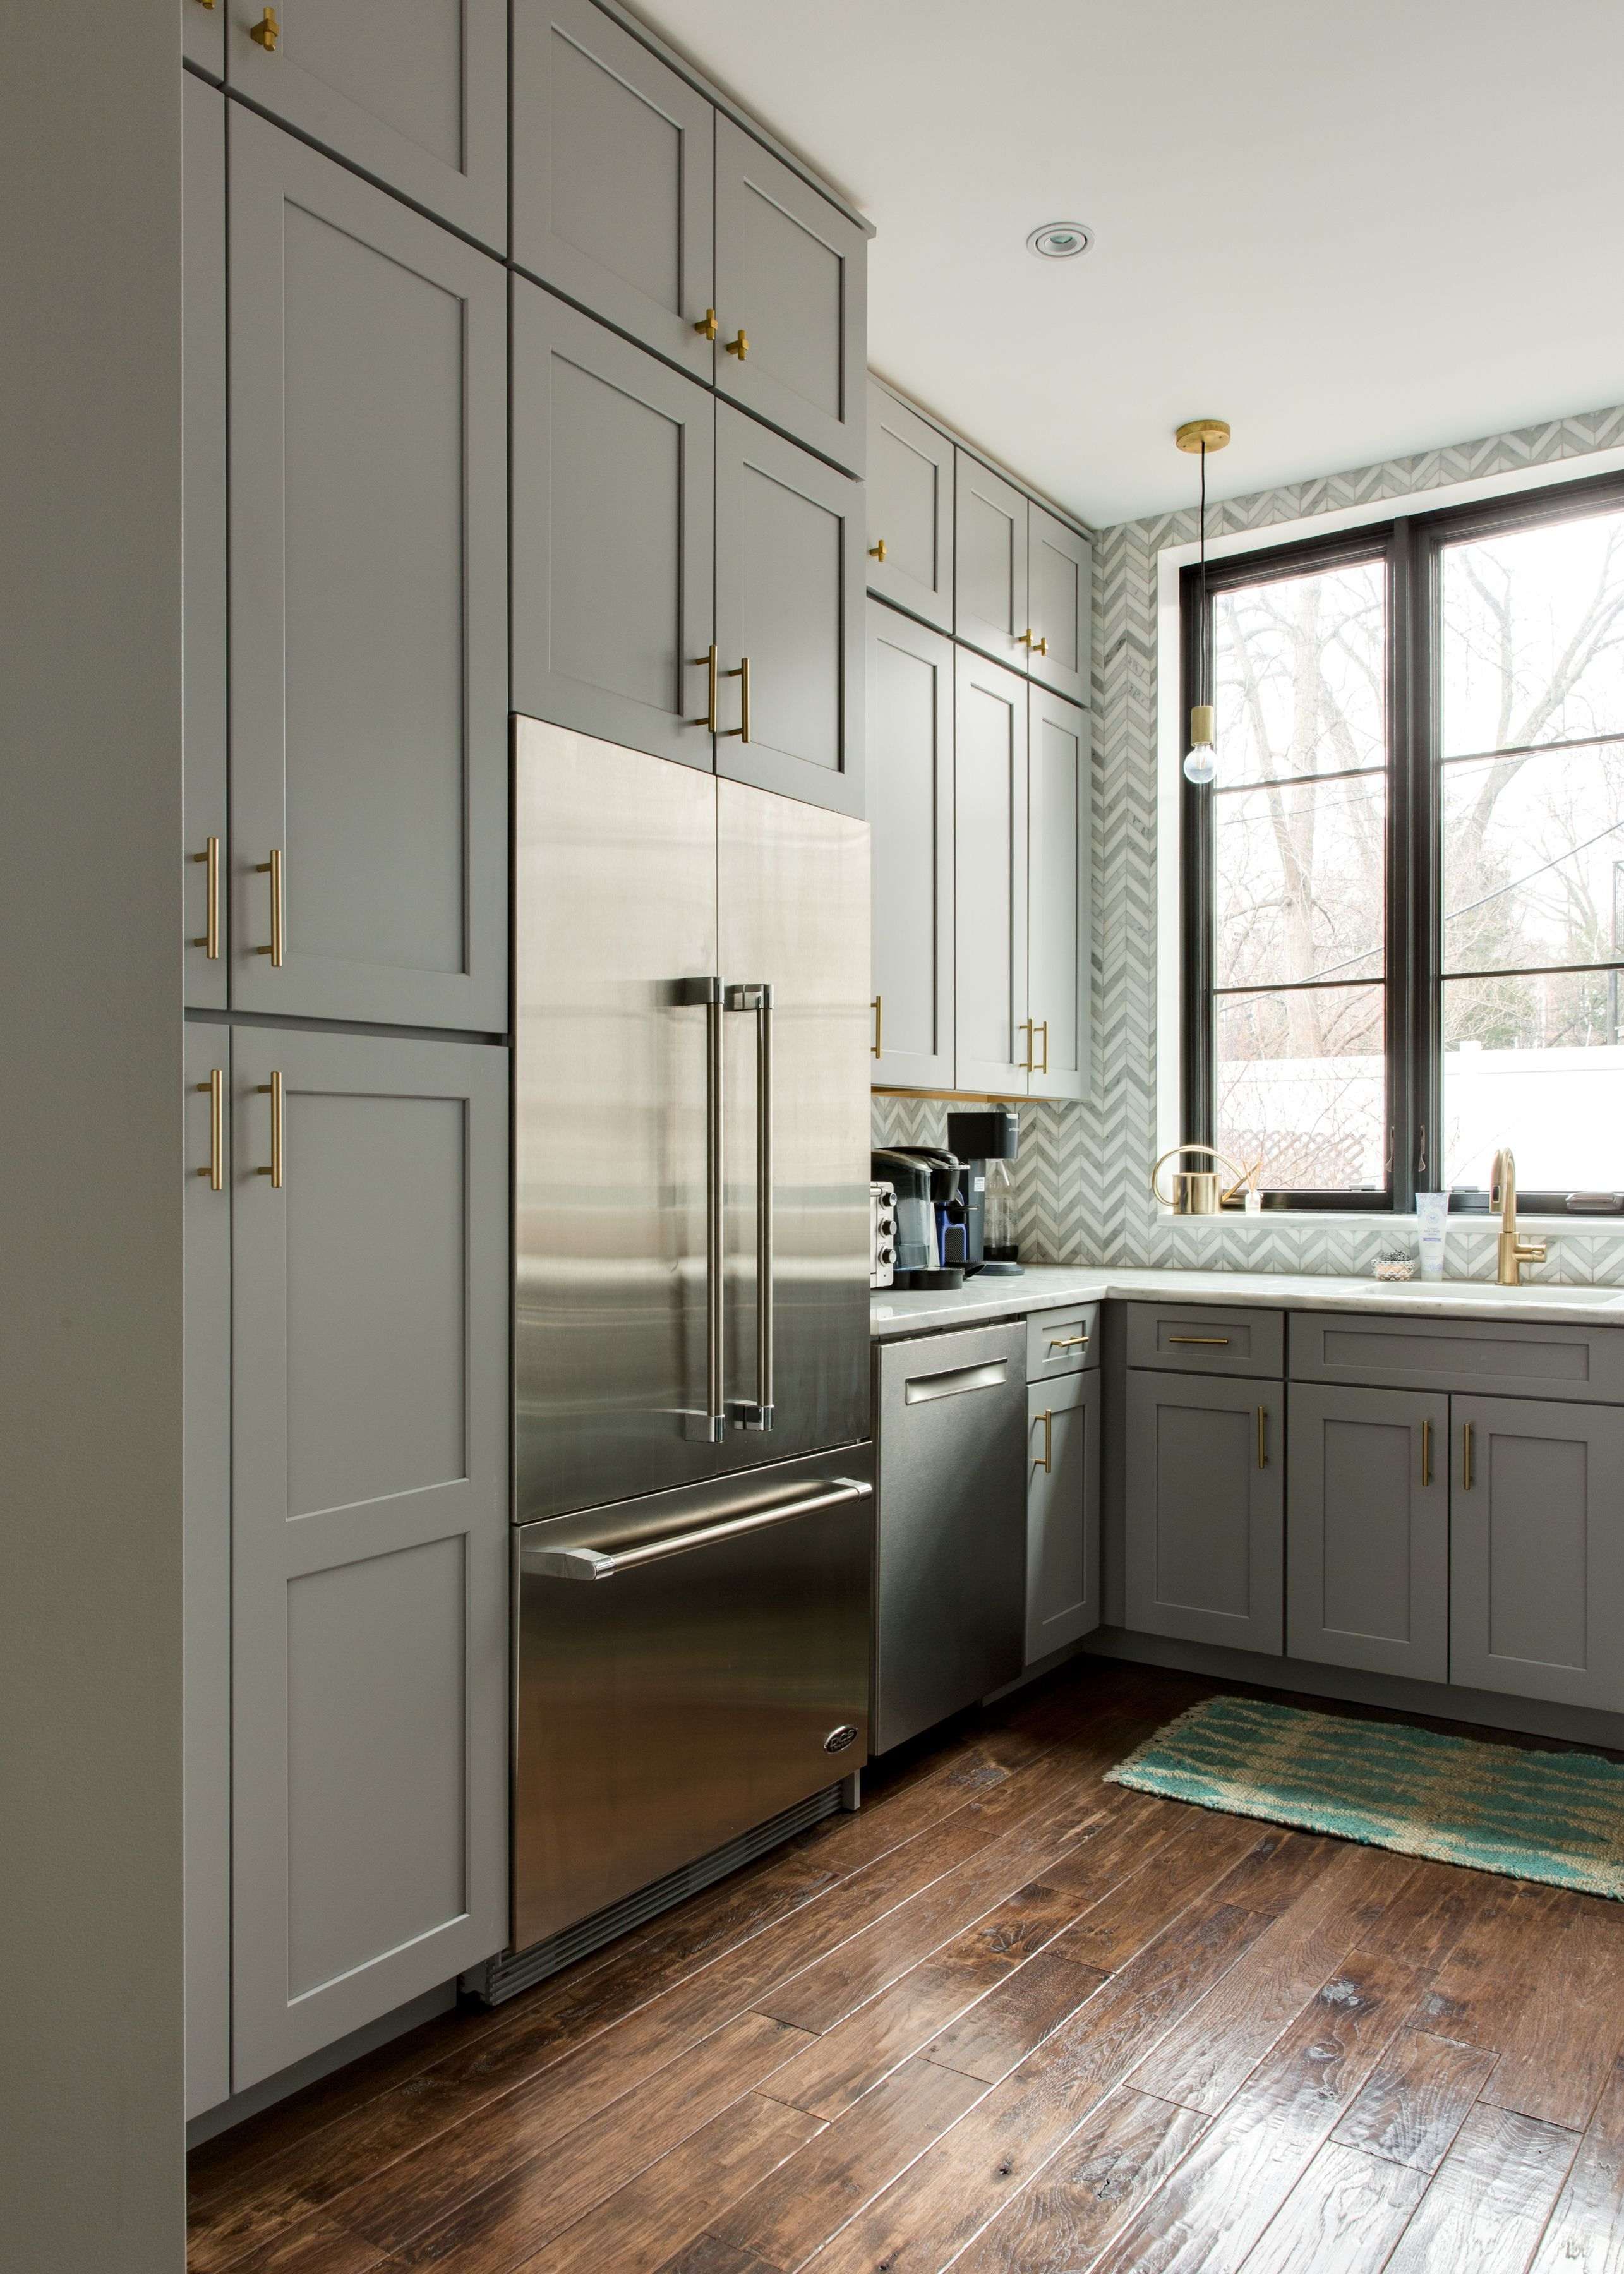 This Brooklyn Brownstone S Bold Remodel Is Extraordinary Kitchen Remodeling Projects Kitchen Remodel Layout Interior Design Kitchen